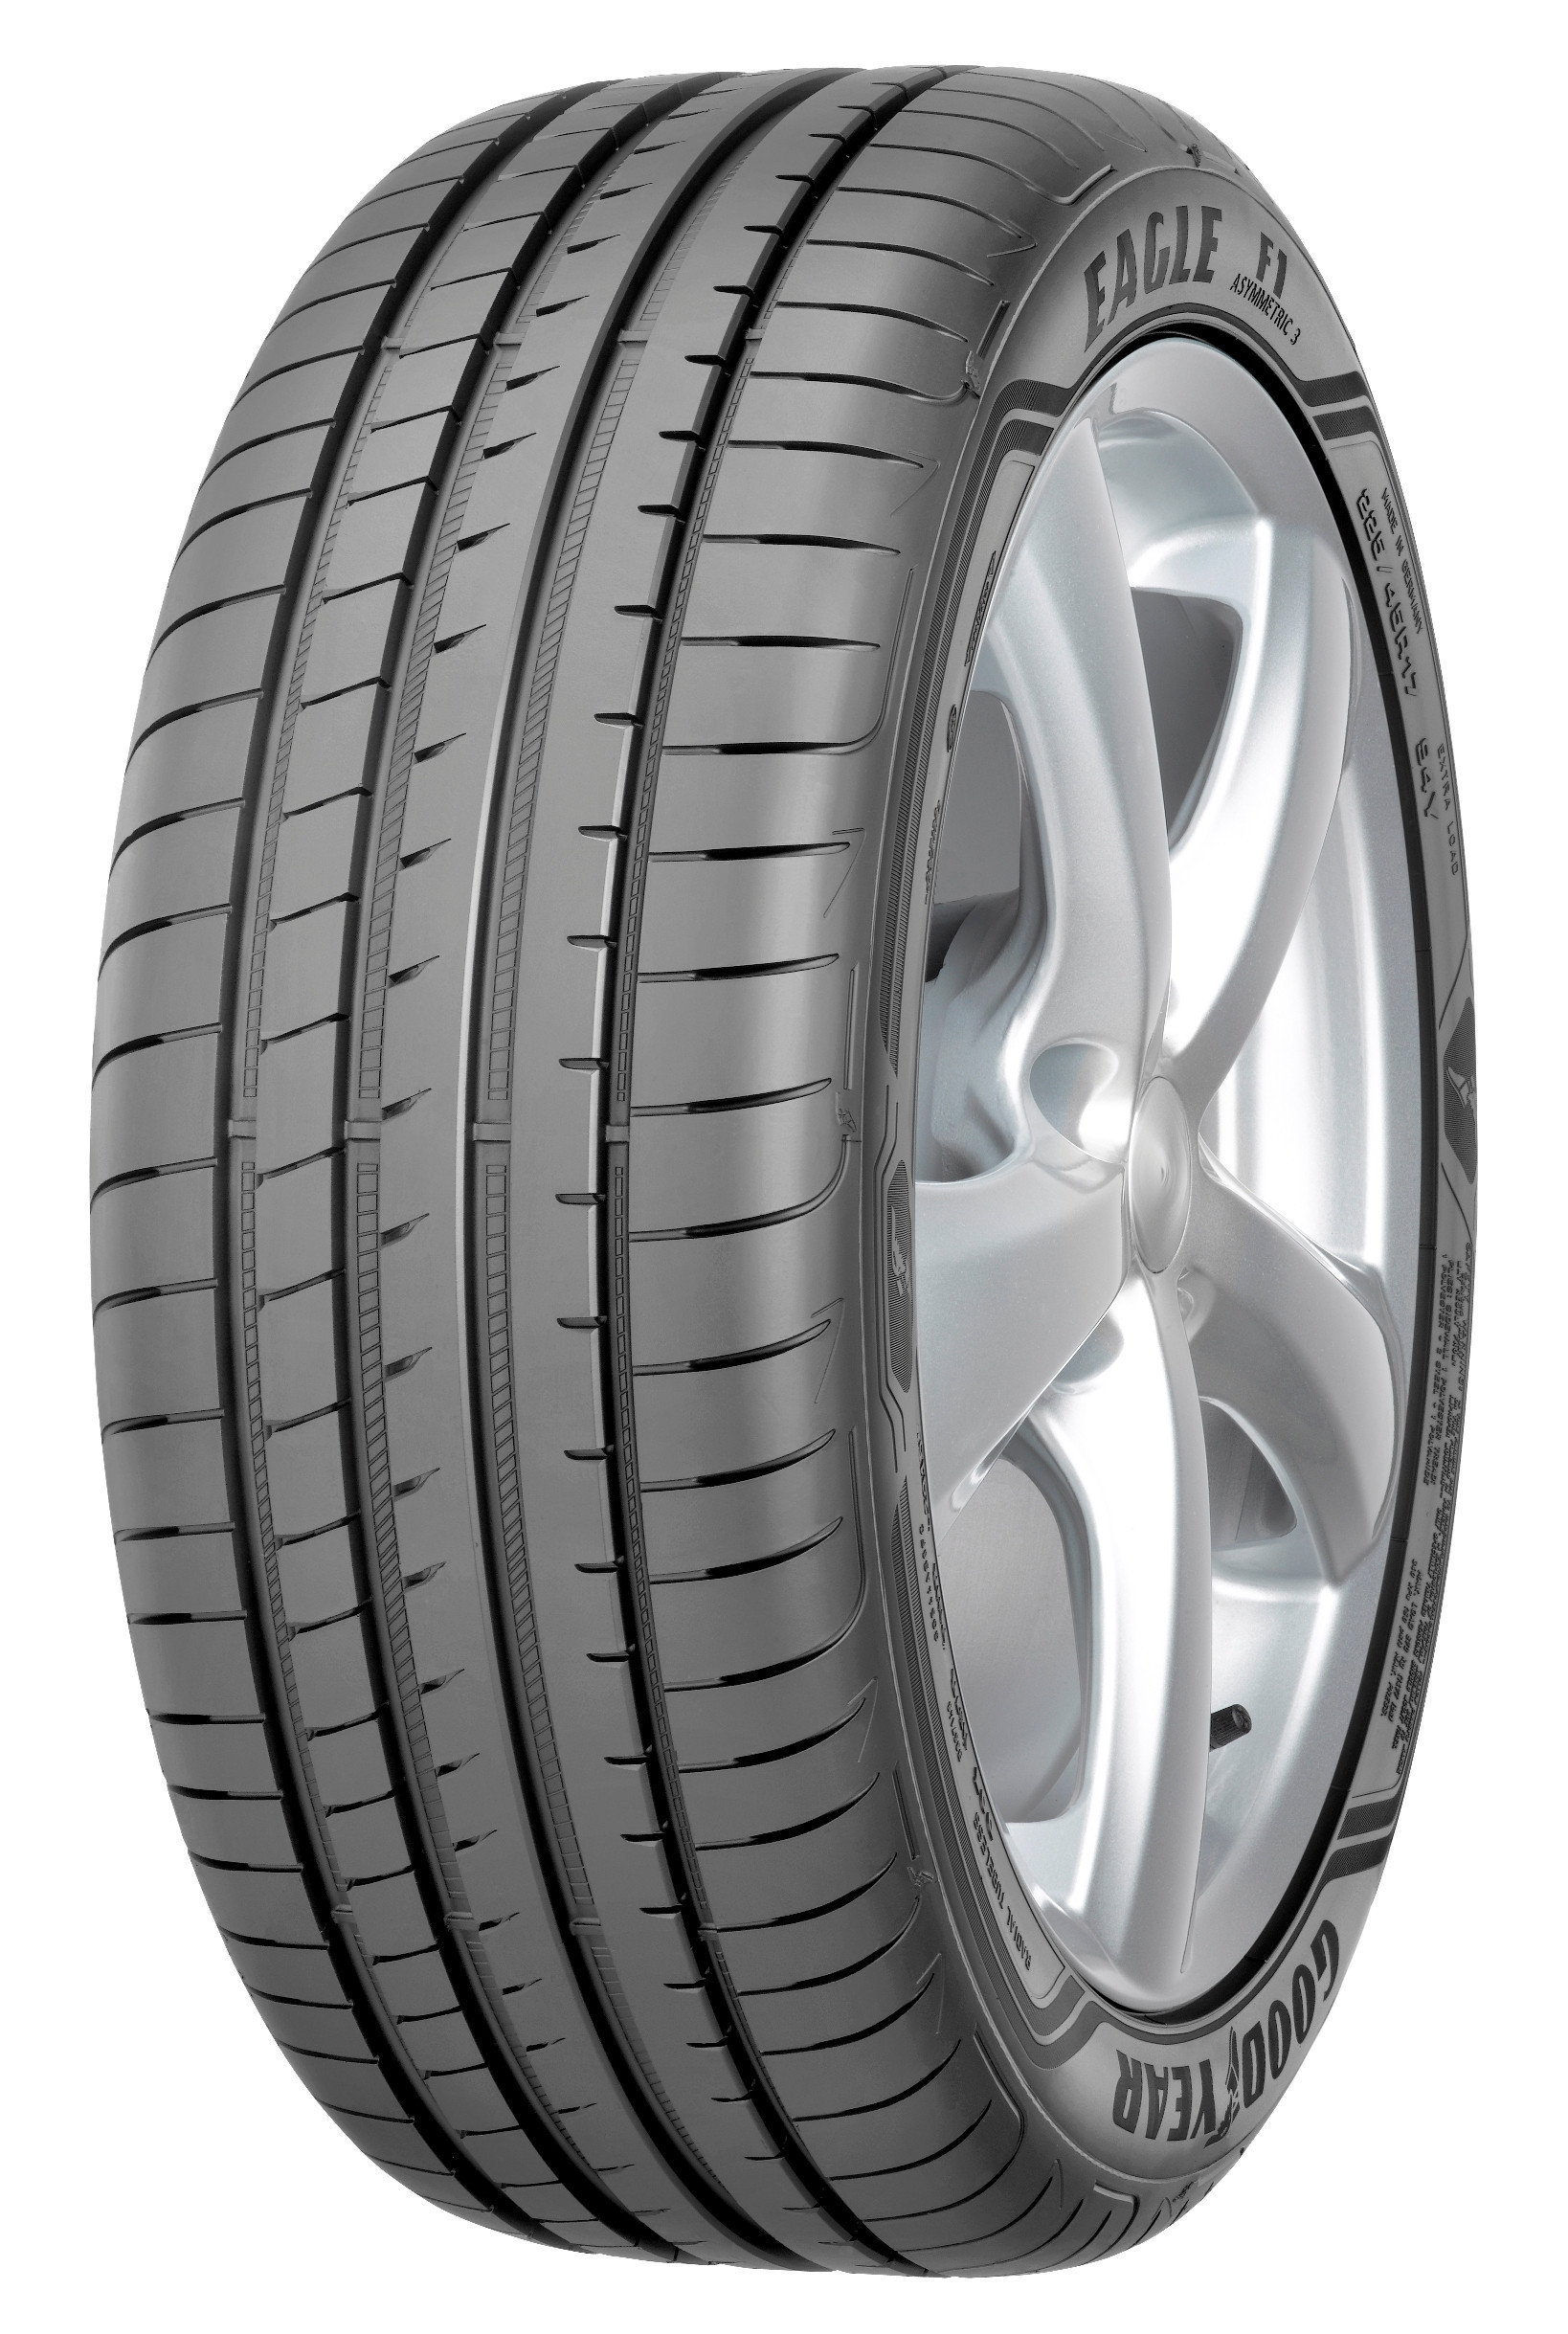 Anvelopa Vara 245/45R18 100Y Goodyear Eagle F1 Asymmetric 3 Xl